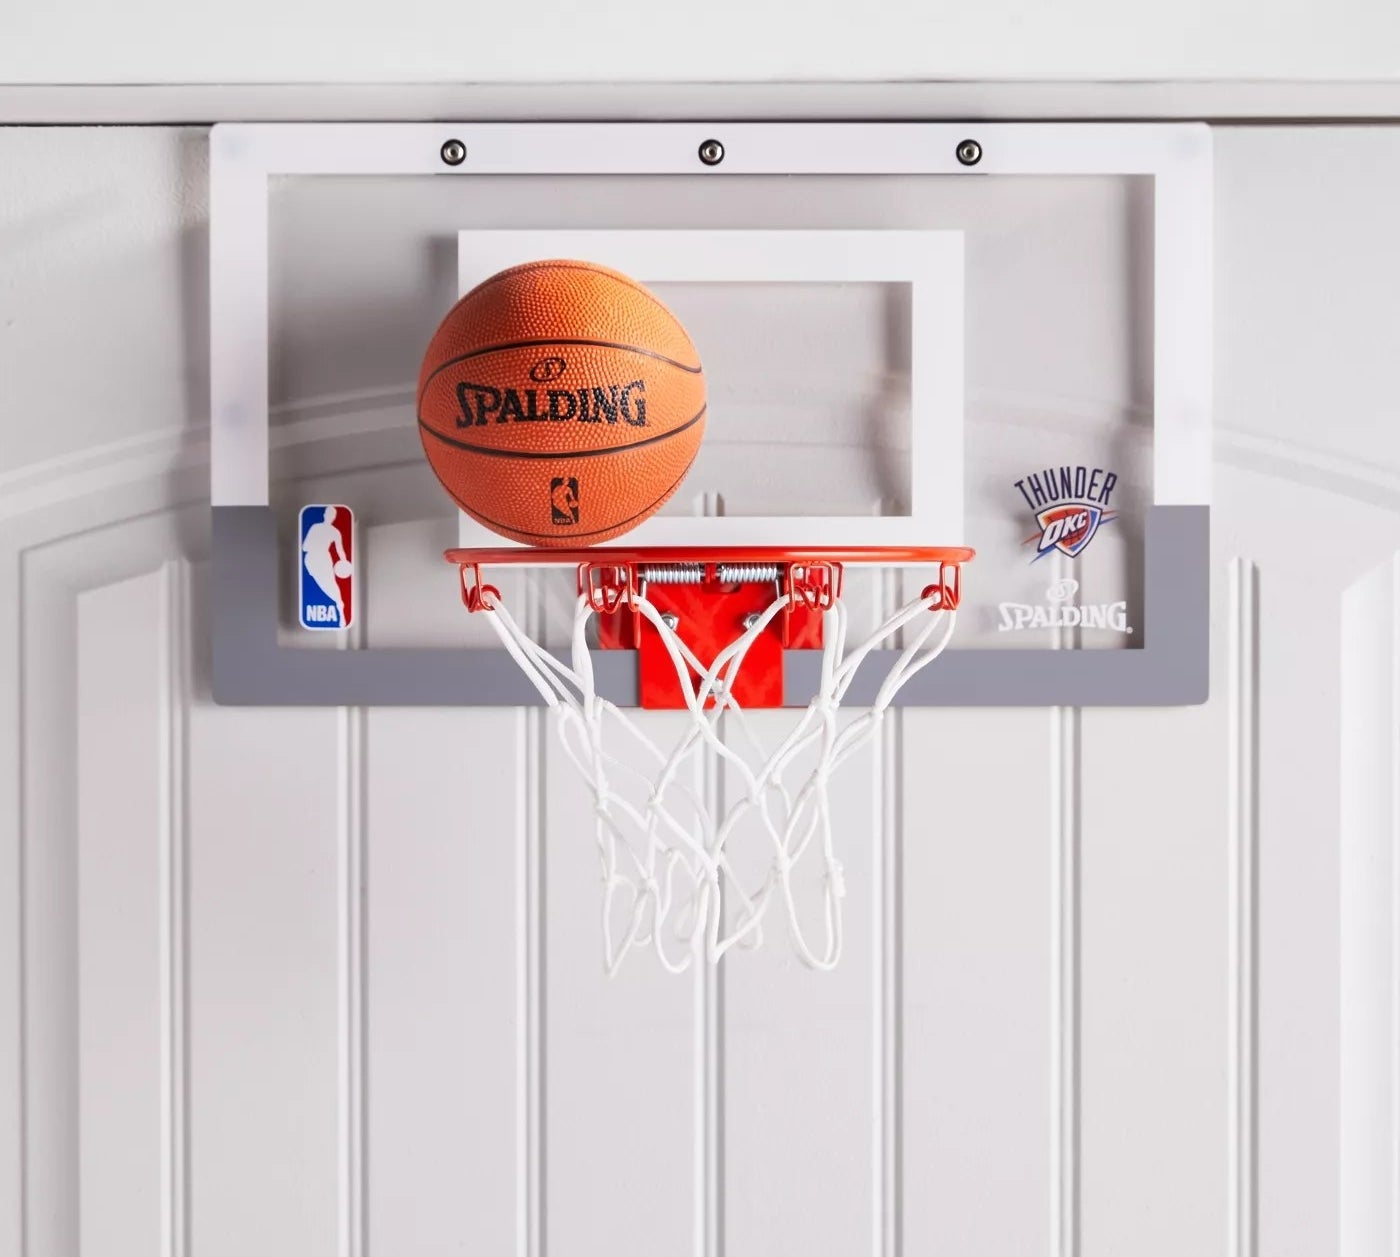 The Spalding basketball hoop and mini rubber ball